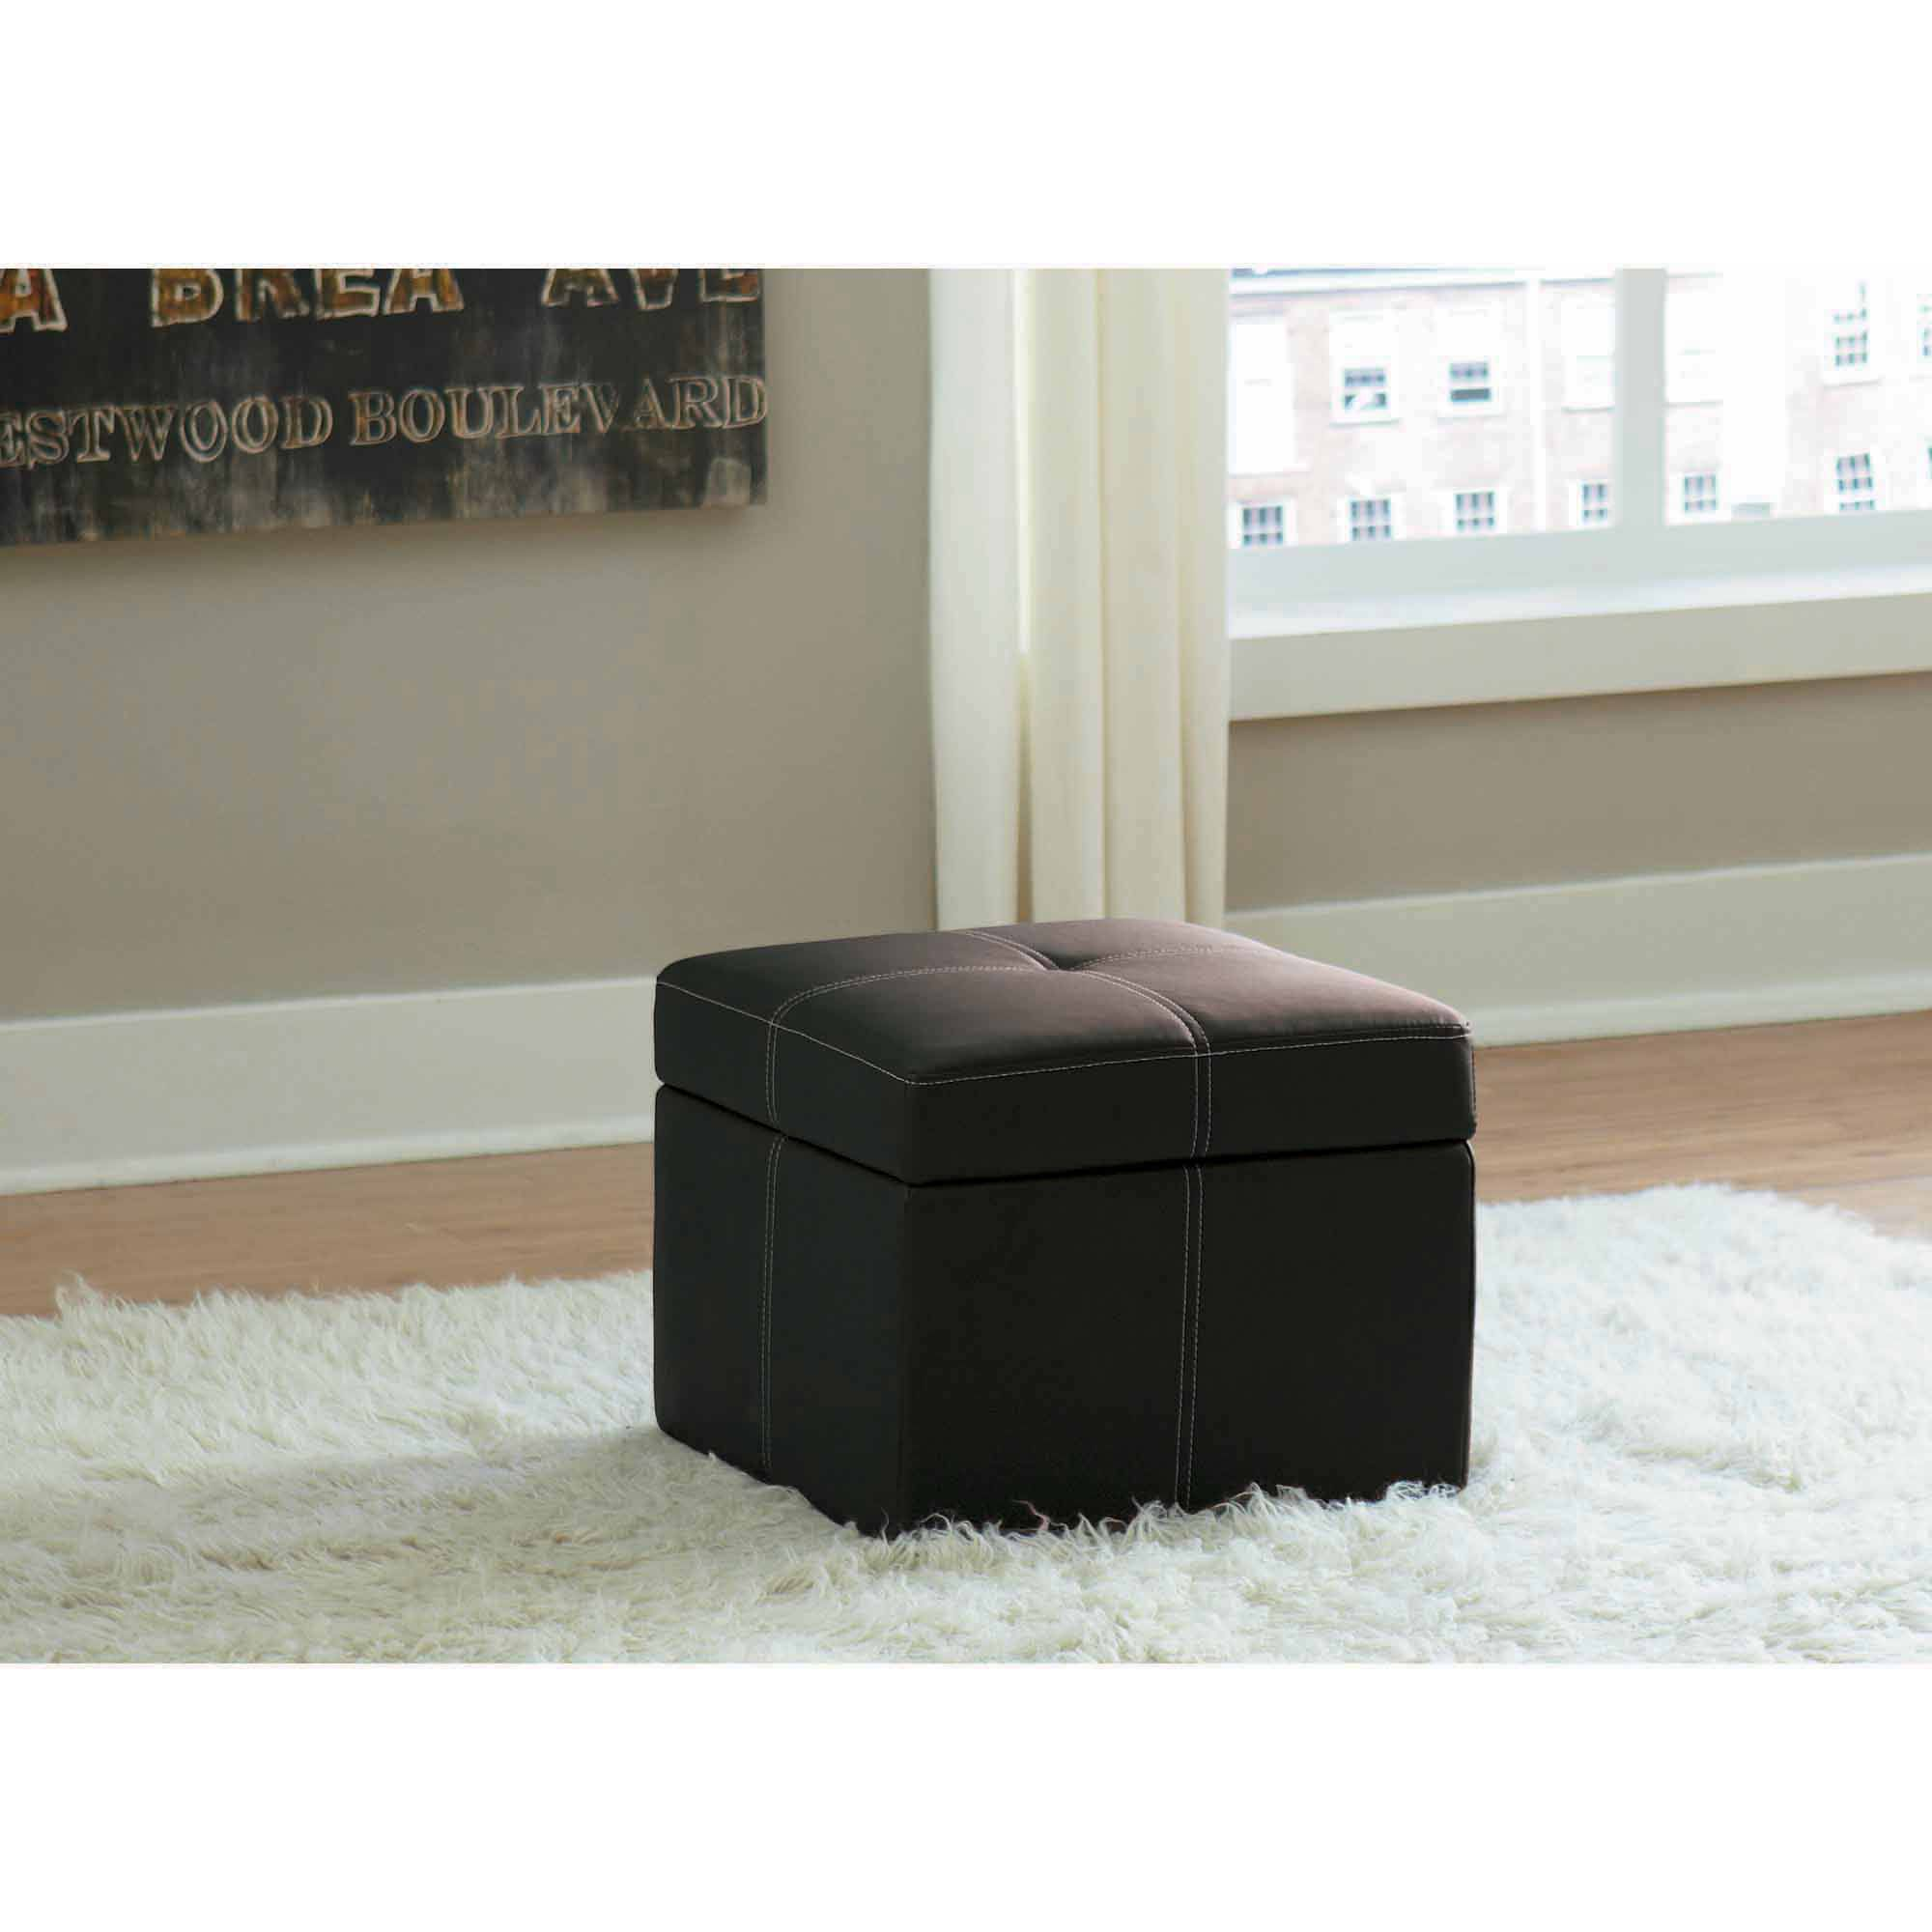 Couchtisch übergröße The Delaney Square Storage Ottoman Comes In Square Shape To Embrace Both Functionality And Style. The Rich Faux Leat… | Kleiner Stauraum, Polsterhocker, Kaffeetisch